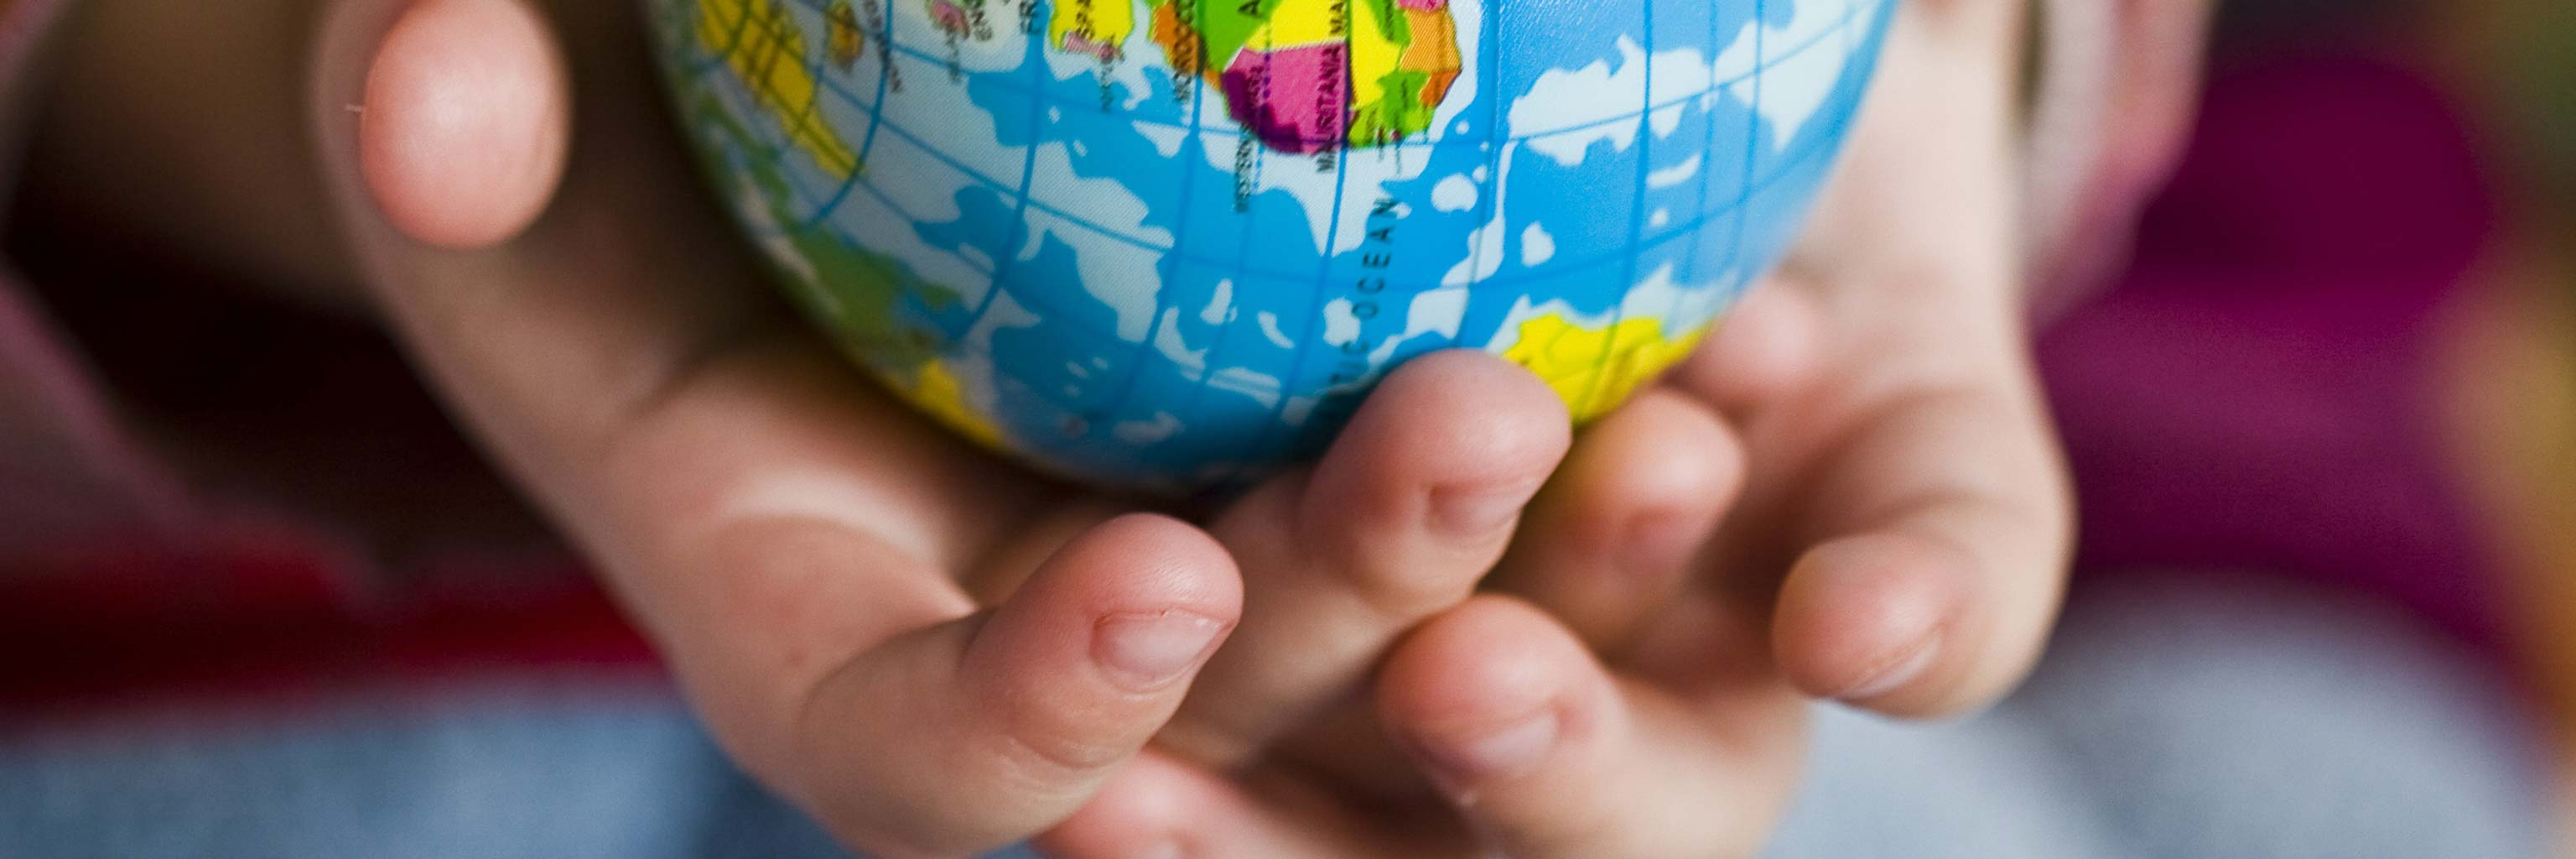 A pair of hands holding a small model of a globe